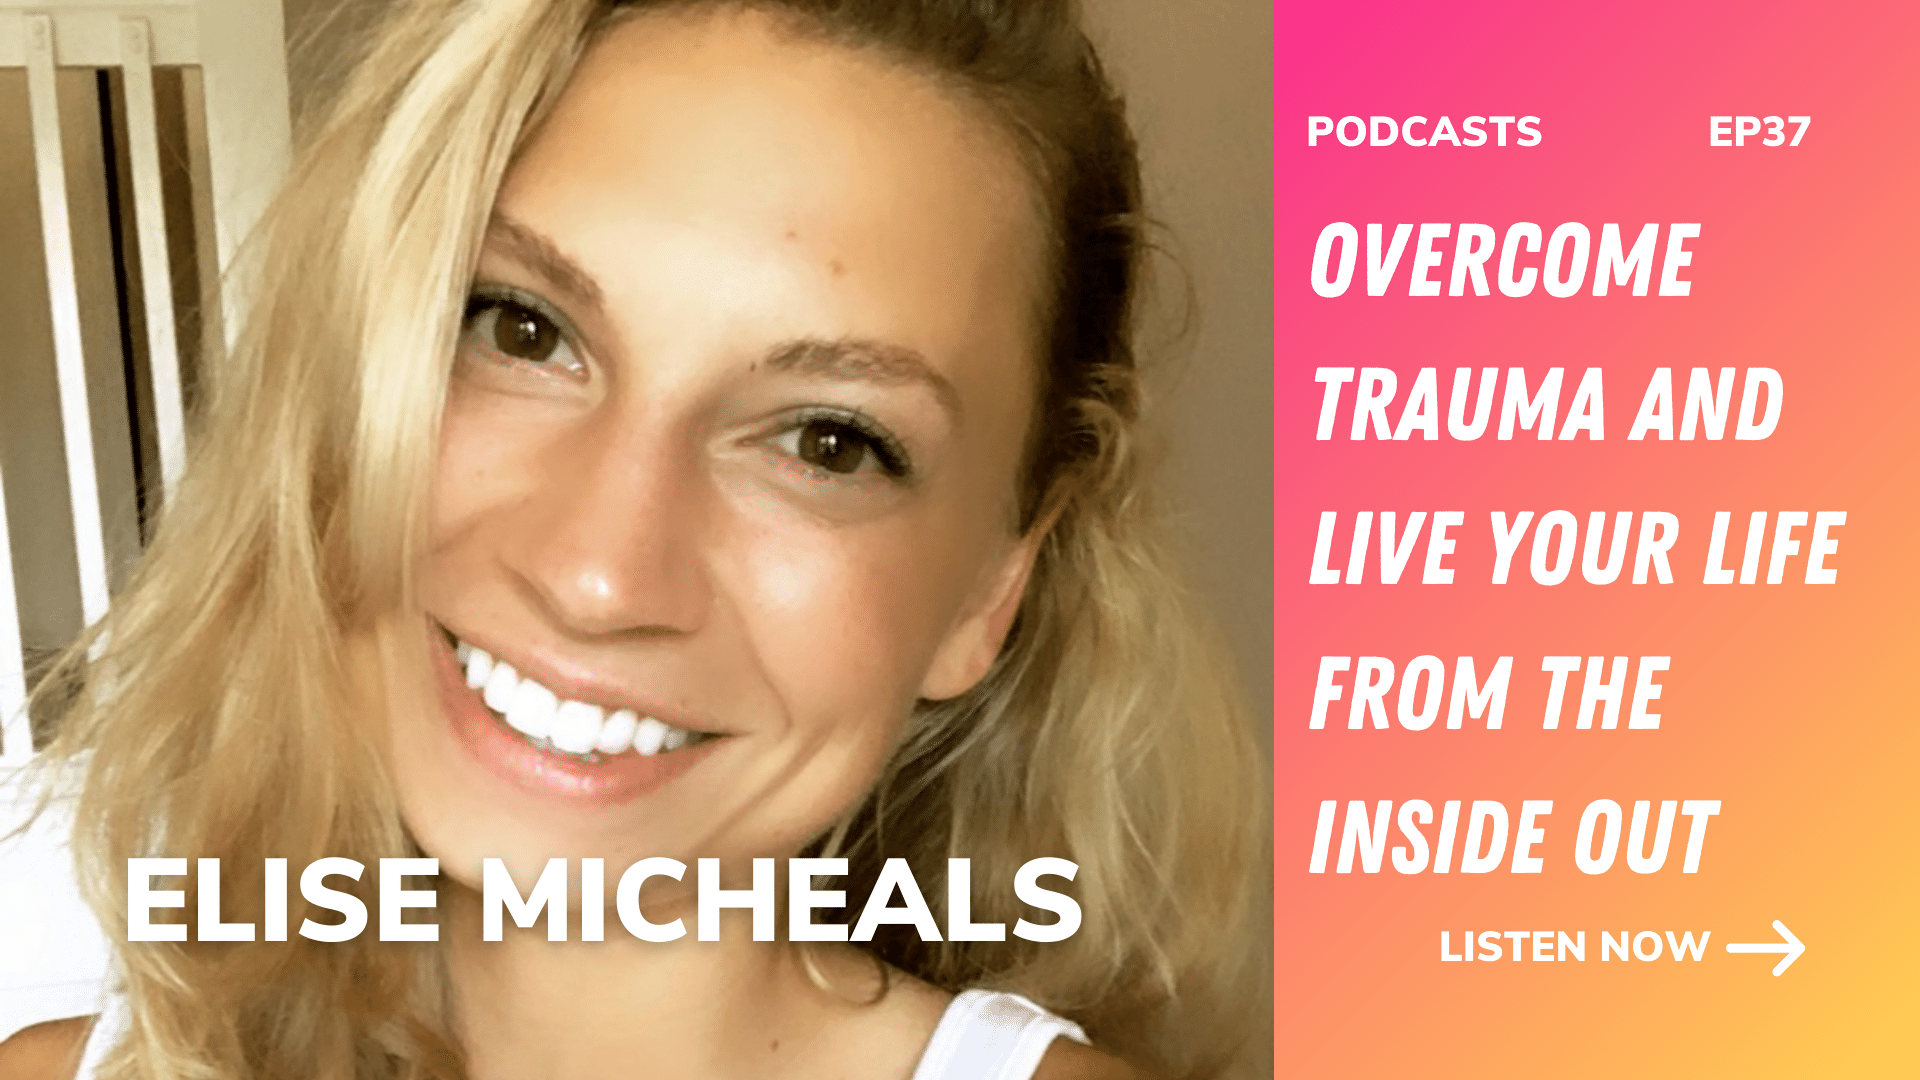 Overcome trauma and live your life from the inside out